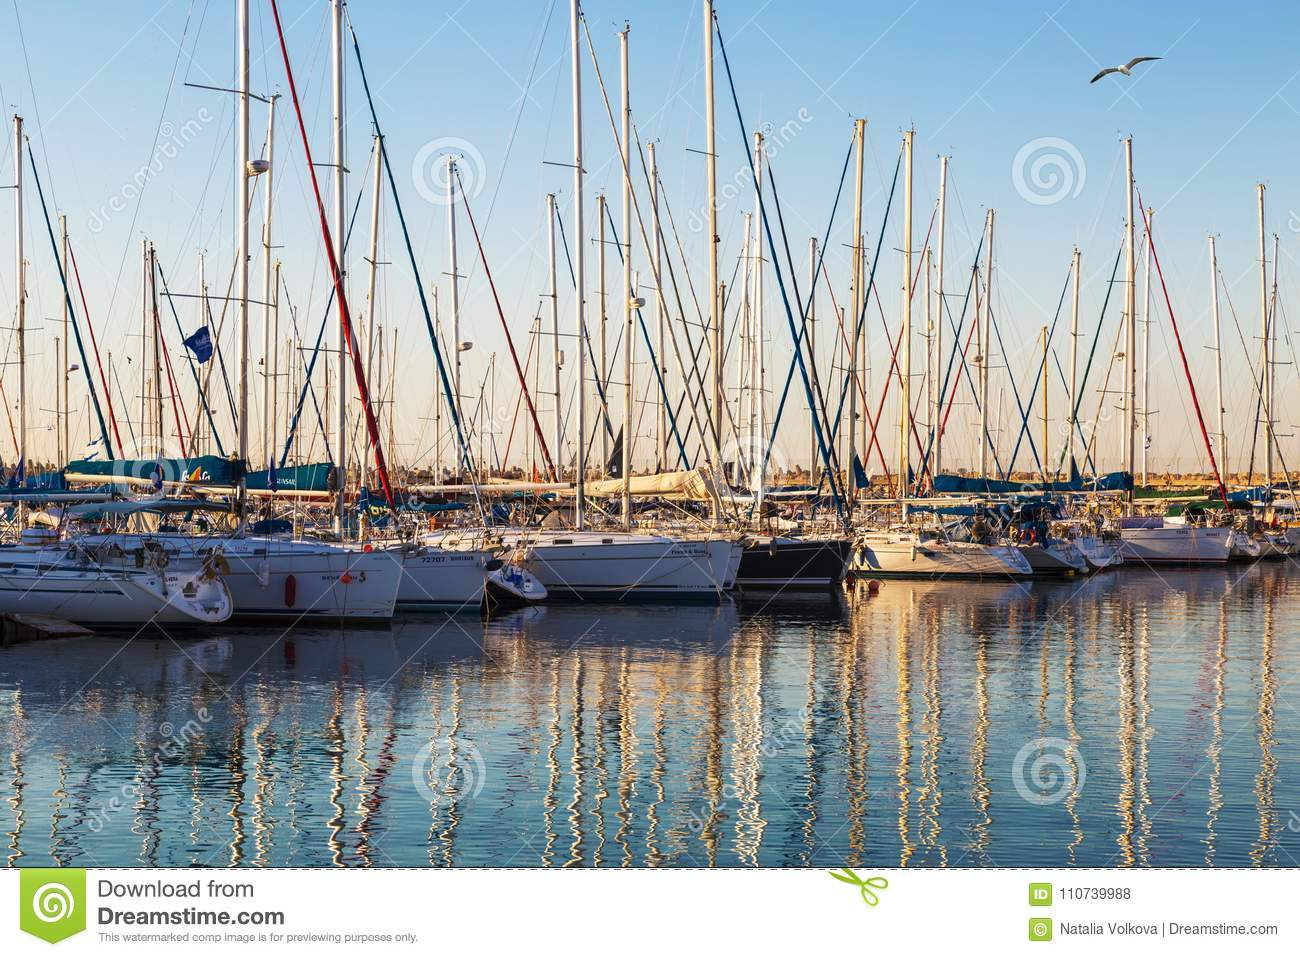 Marina with docked yachts at sunset. Ashdod